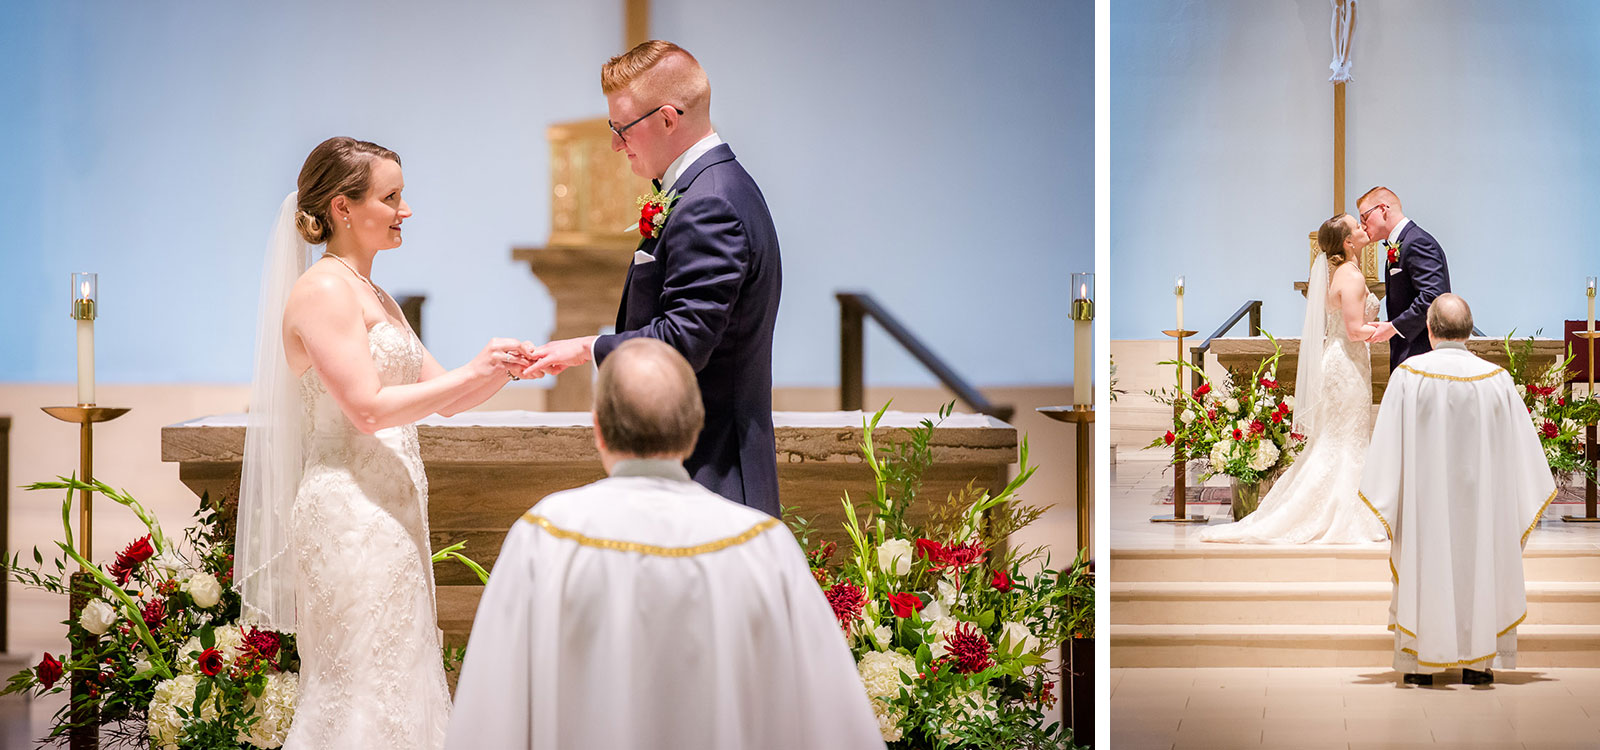 Eric_and_Christy_Photography_Blog_Wedding_Erica_Mike-16-17